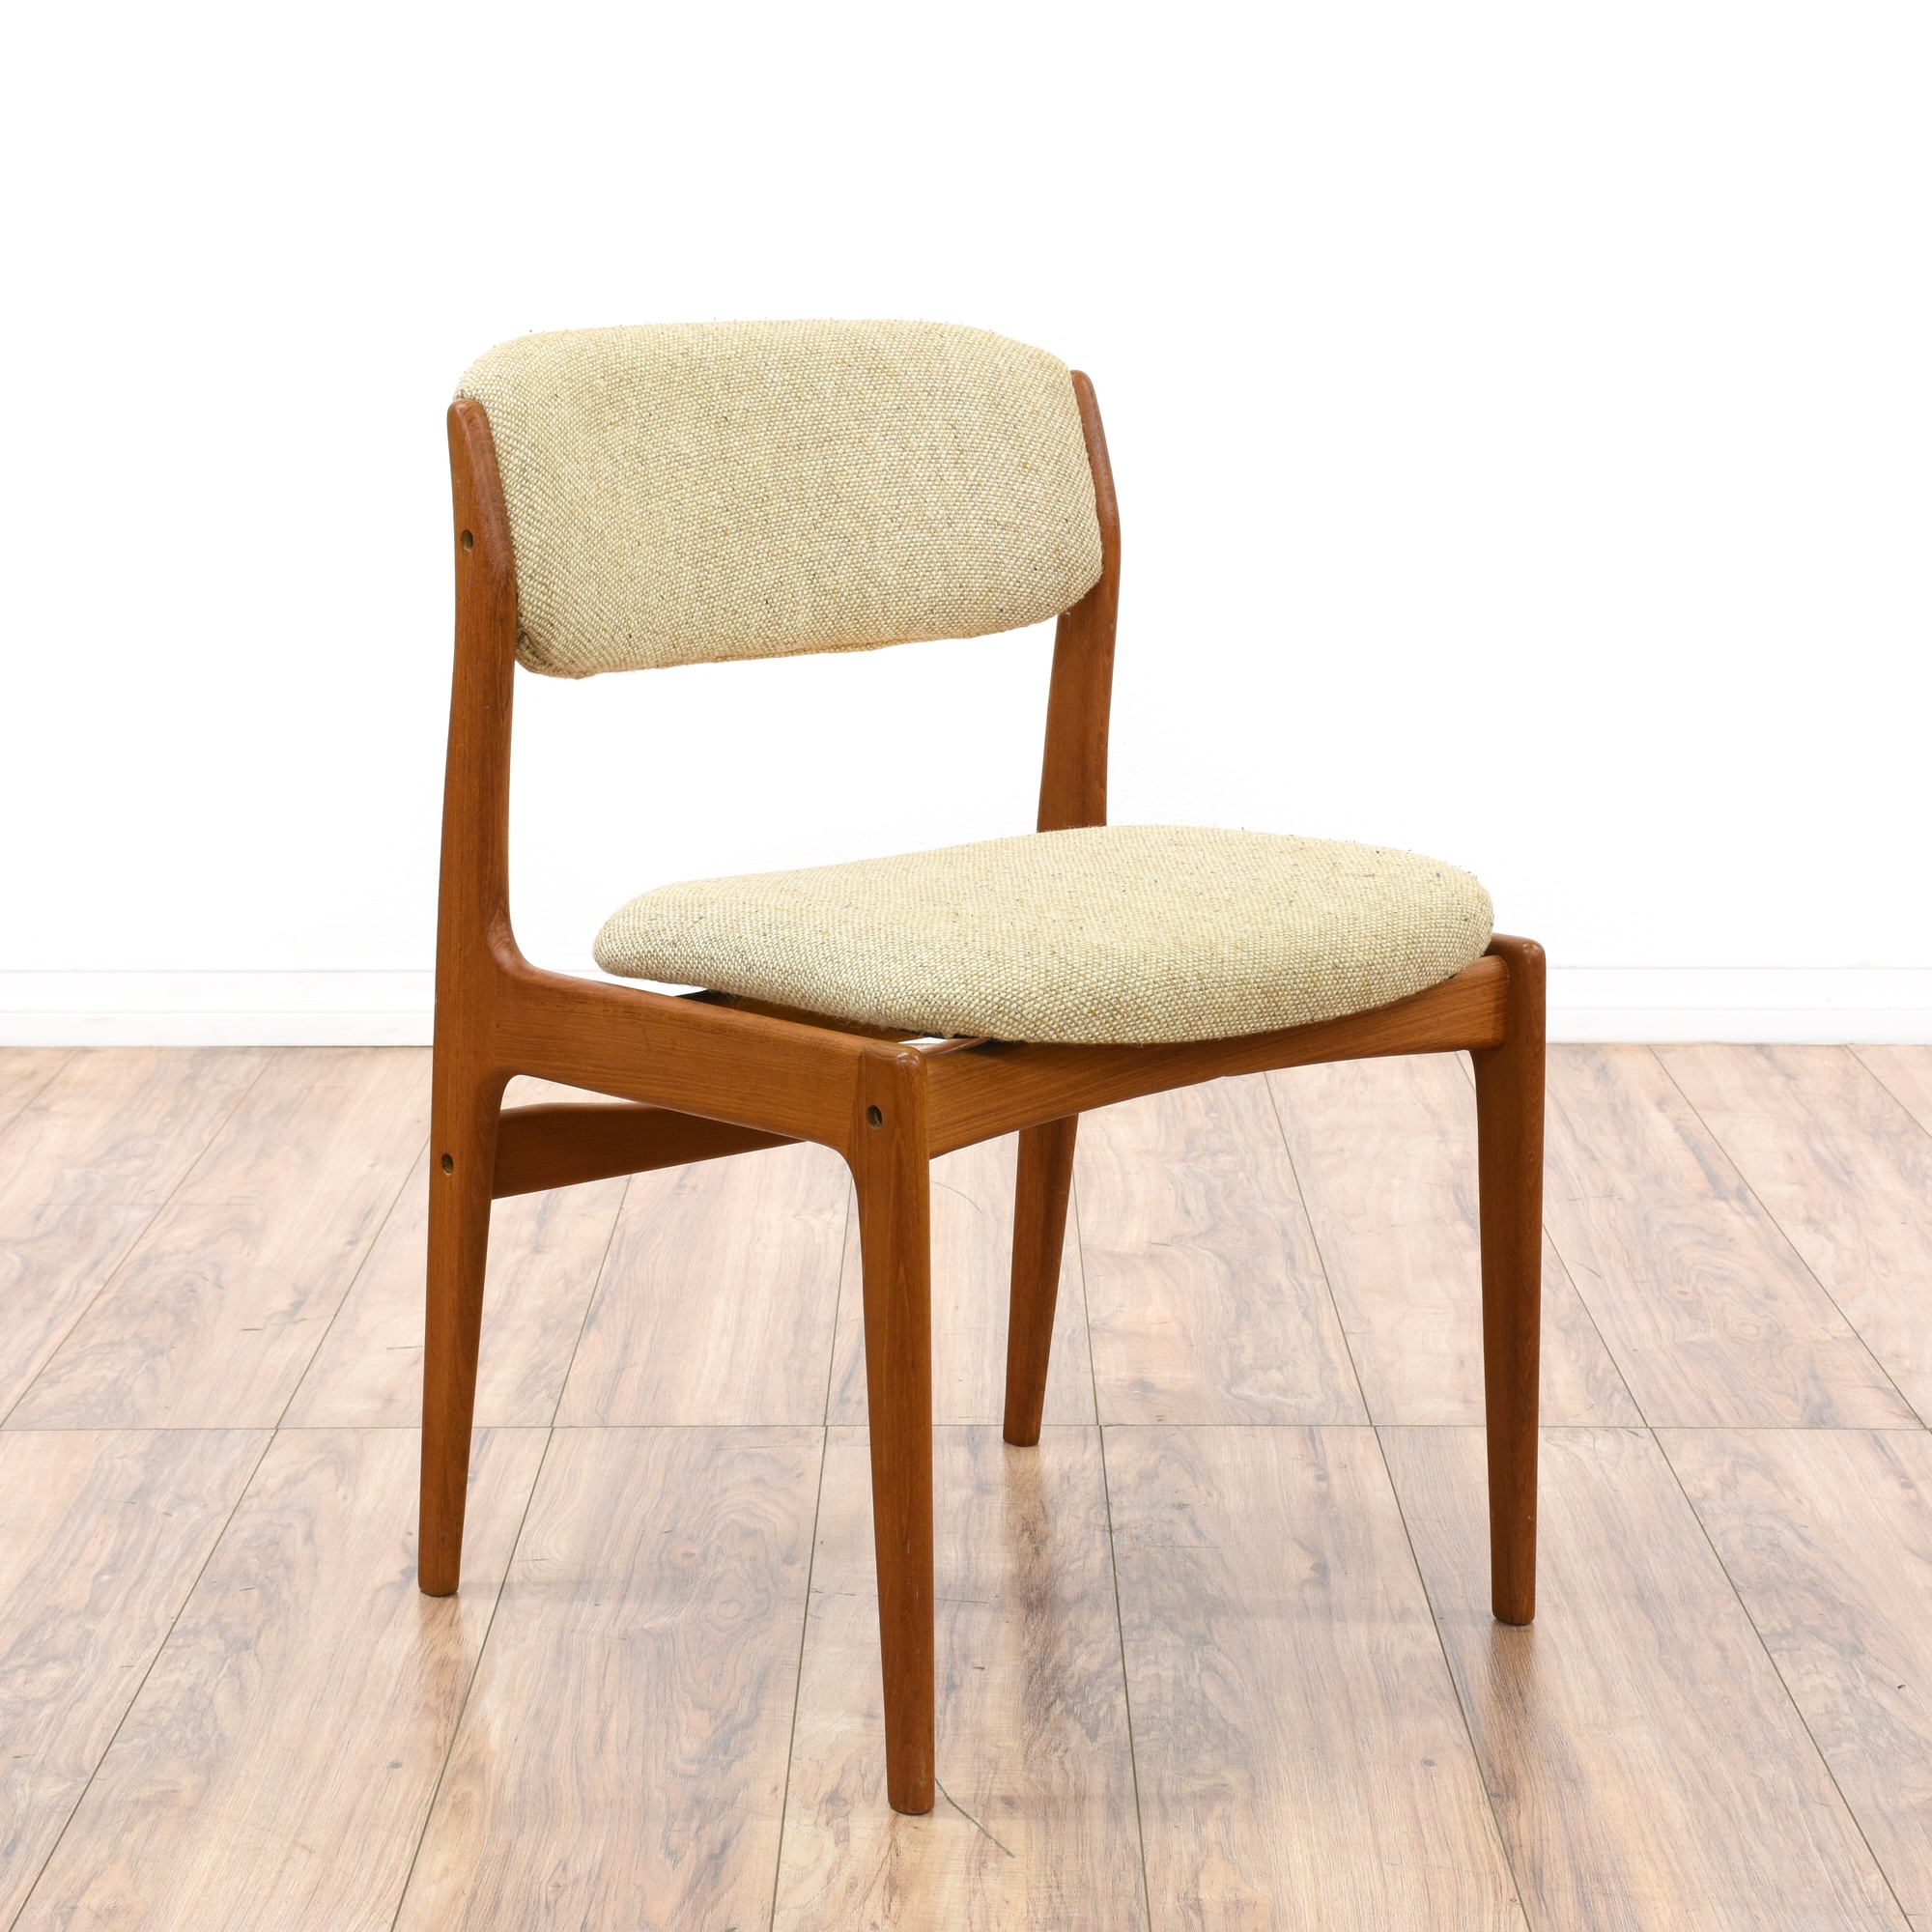 """Pair of """"Benny Linden"""" Danish Modern Dining Chairs"""